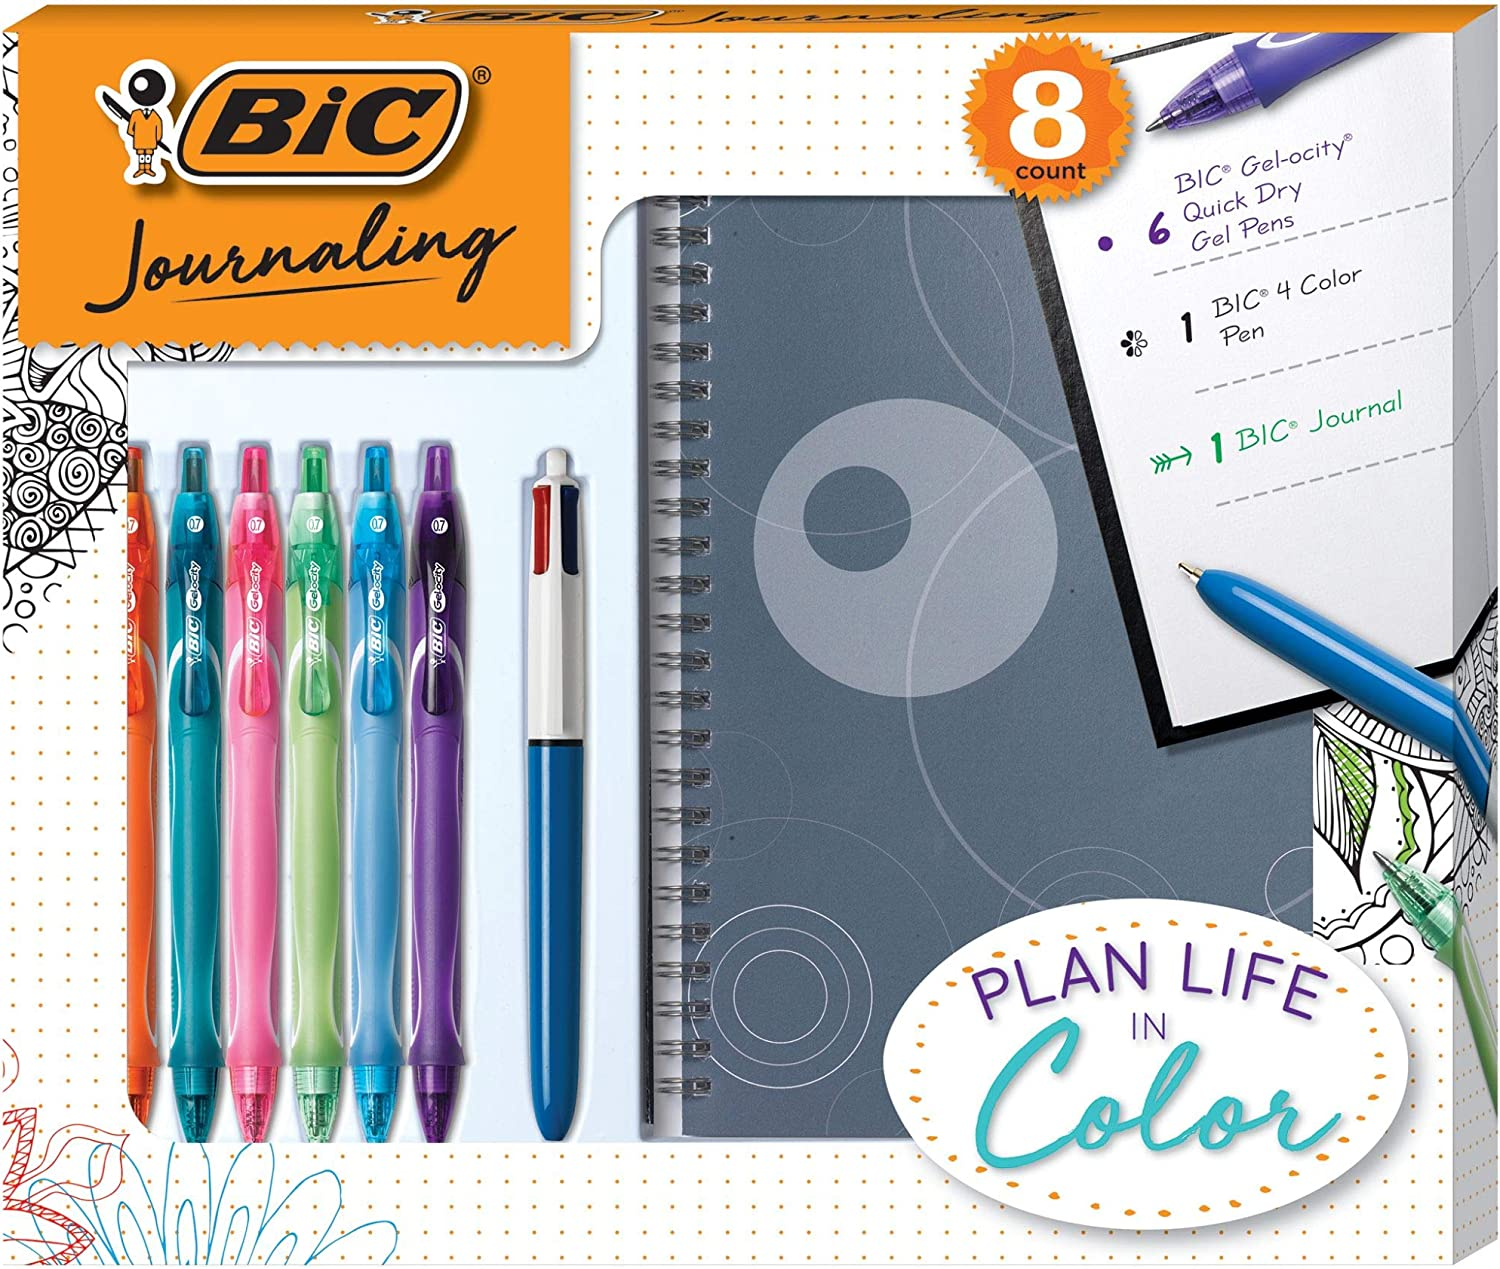 Gel Pens//Ballpoint Pen//Journal 8-Count BIC Journaling Kit Assorted Colors